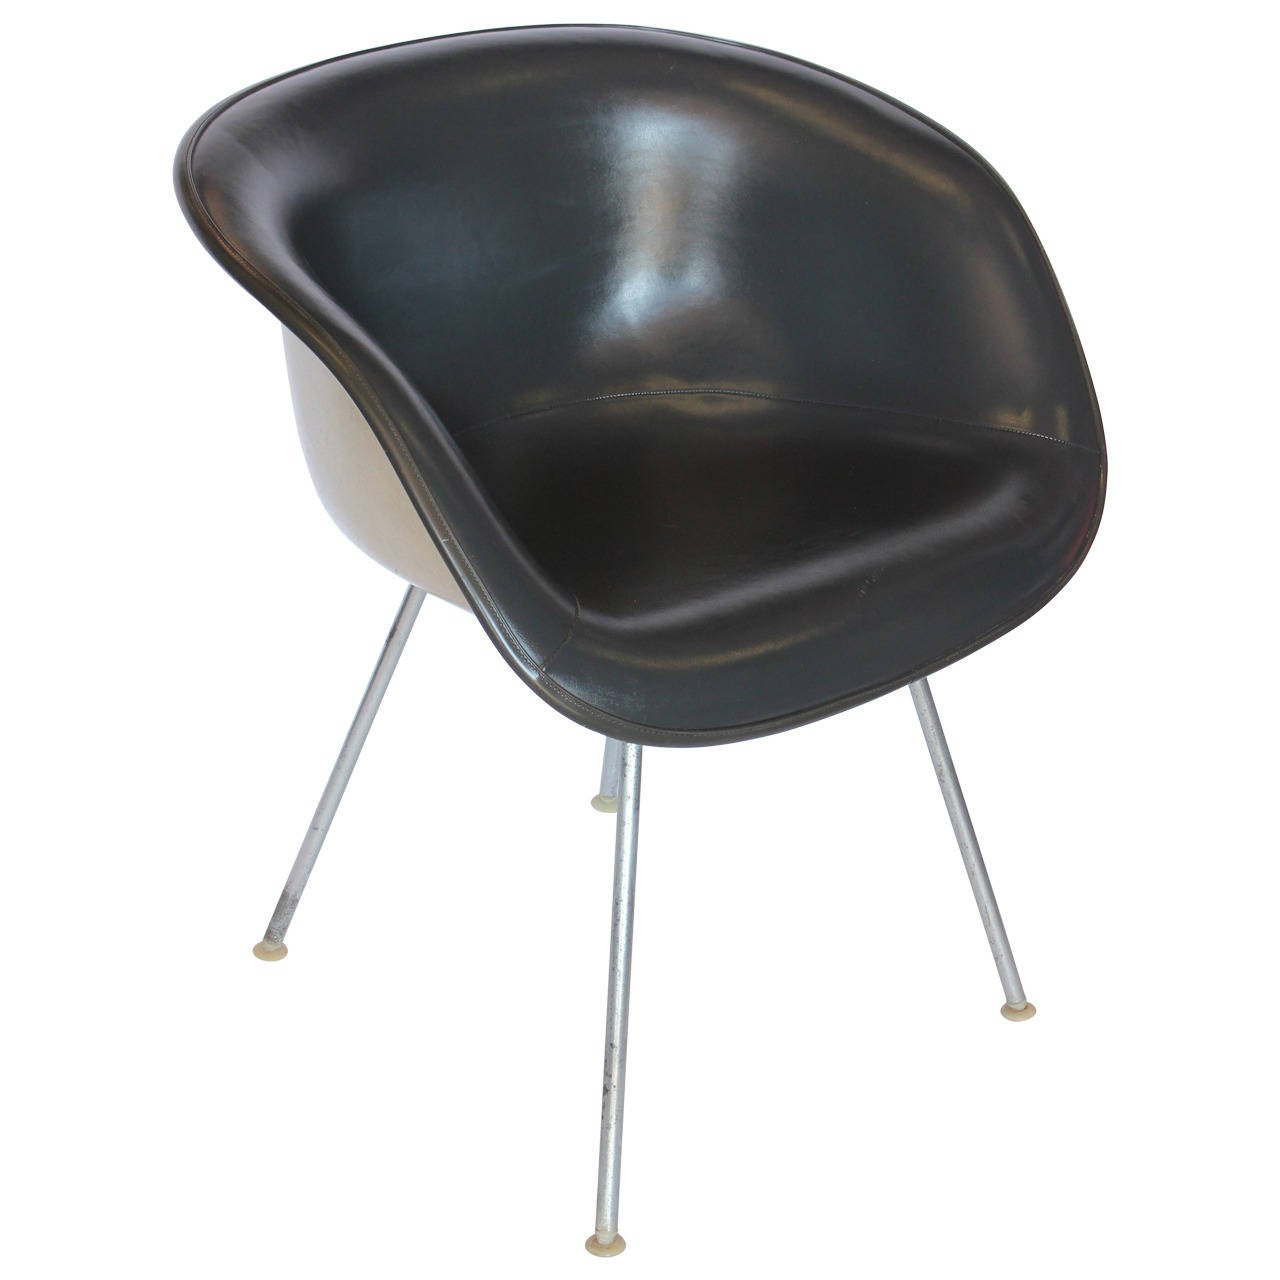 Eames grey naugahyde chair by herman miller for sale at for Hermann muller chairs